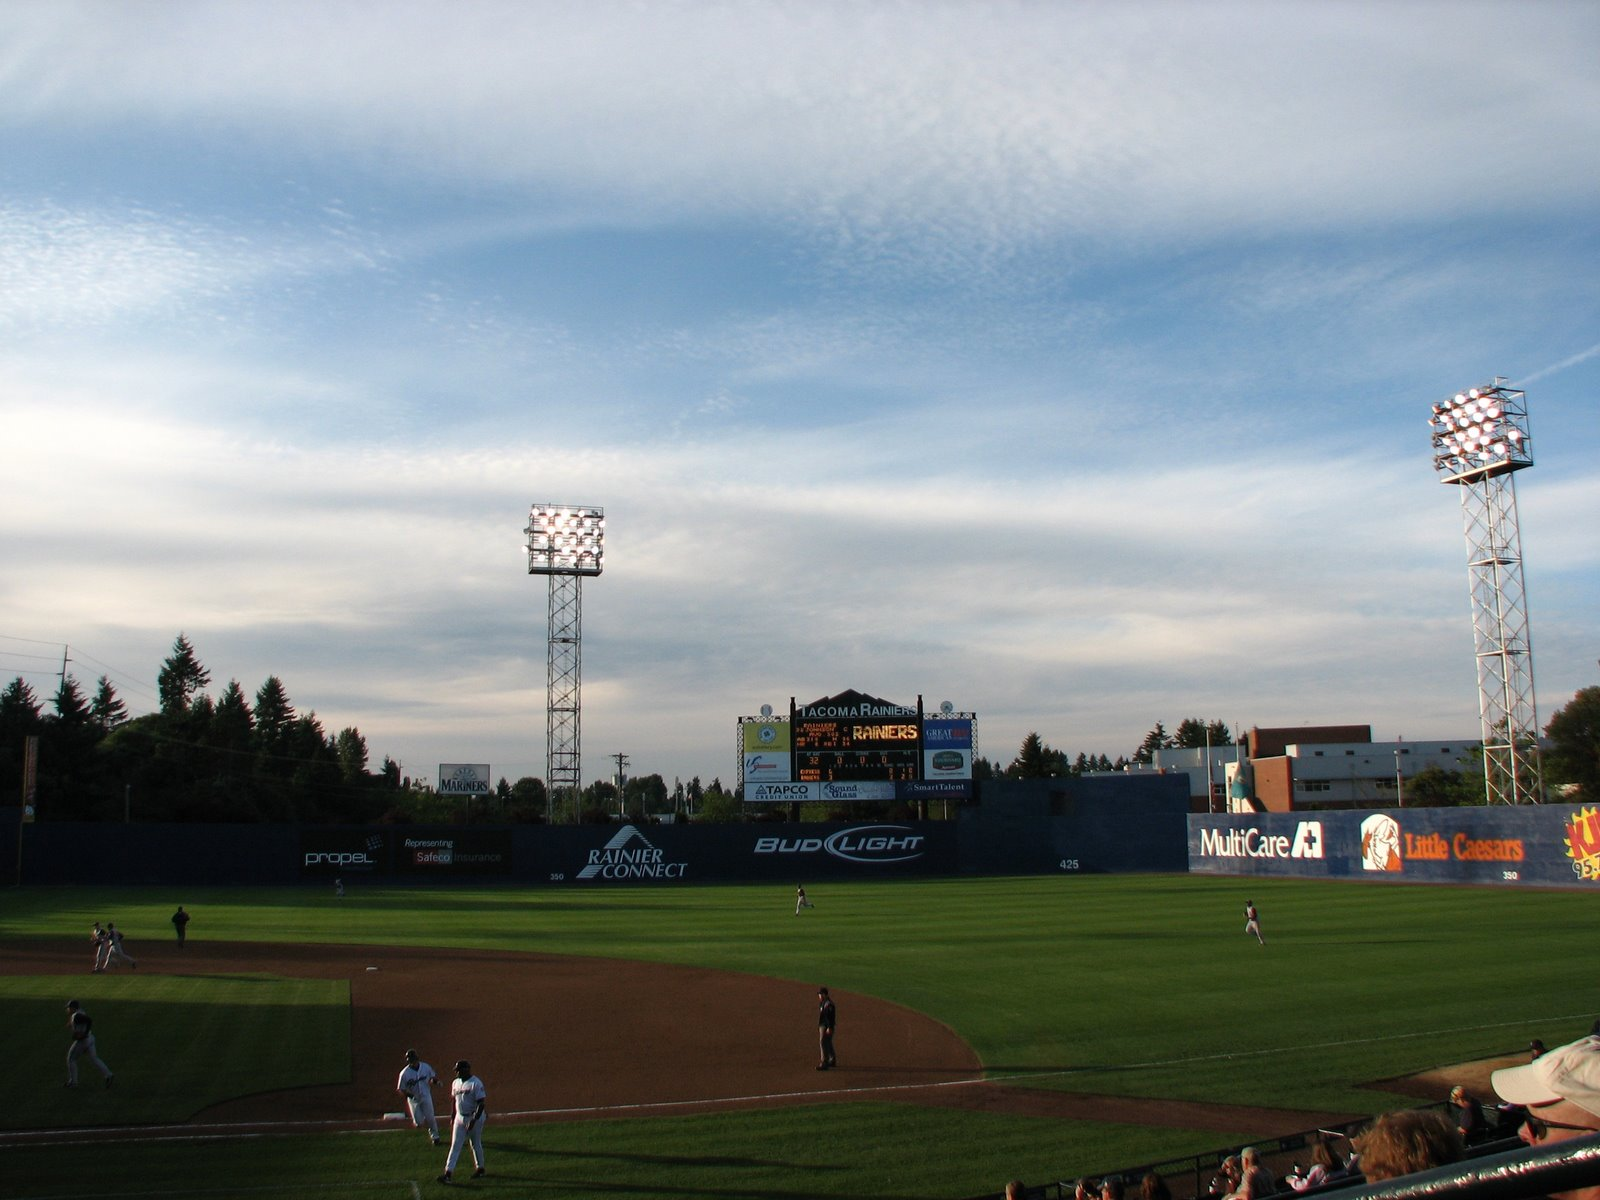 [Tacoma+Rainiers++Cheney+Field.JPG]